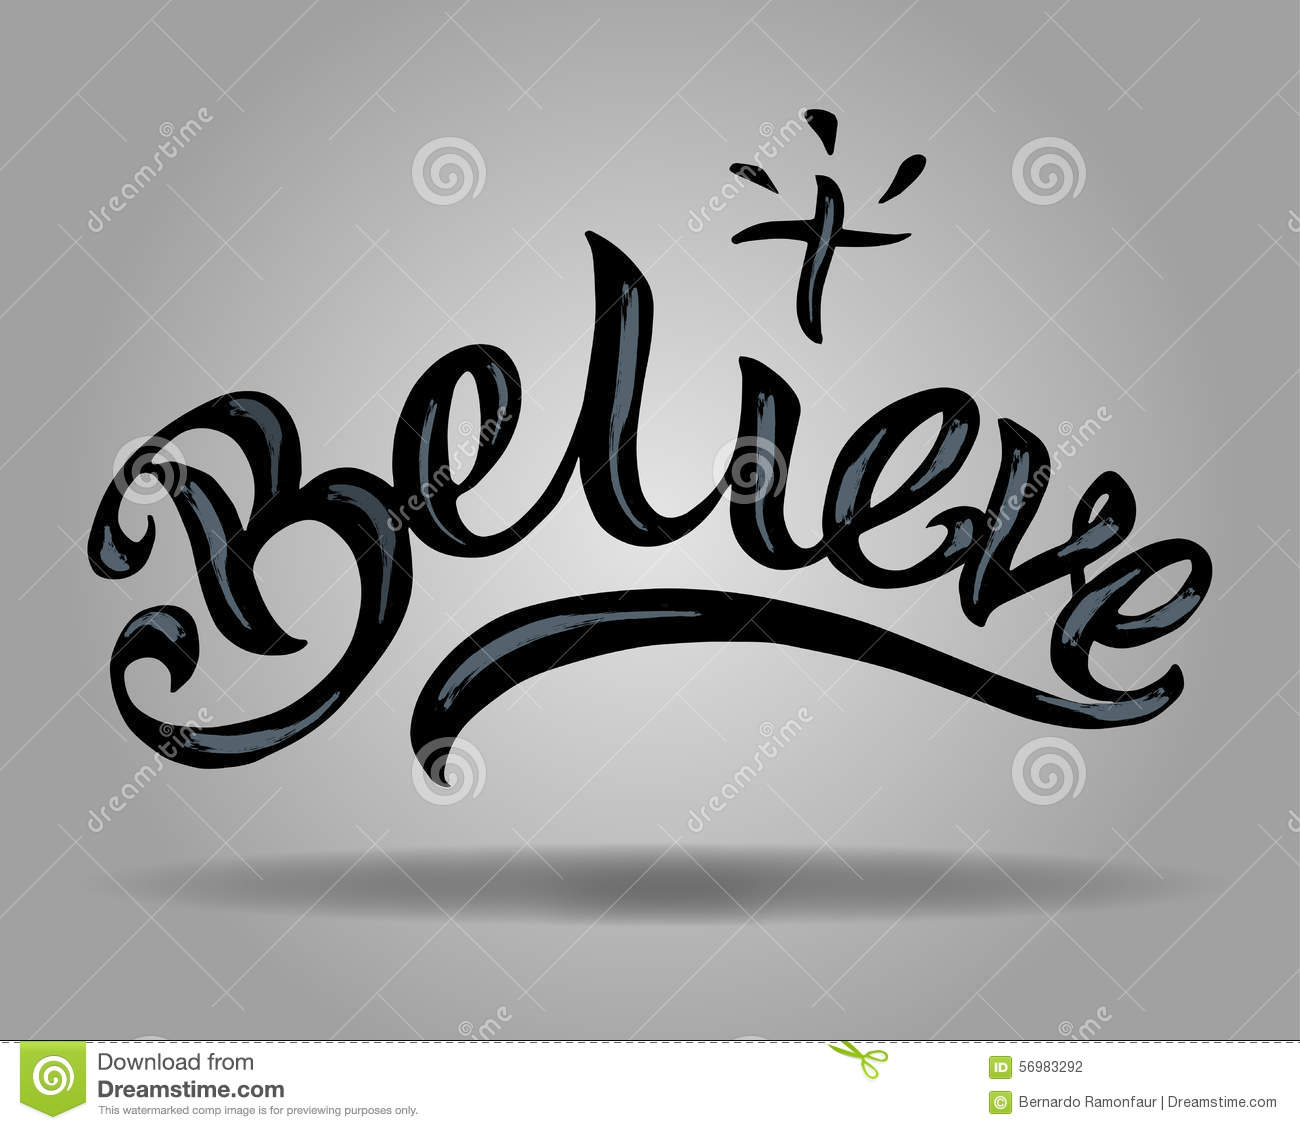 Believe stock vector. Illustration of drawn, hand, cross ...